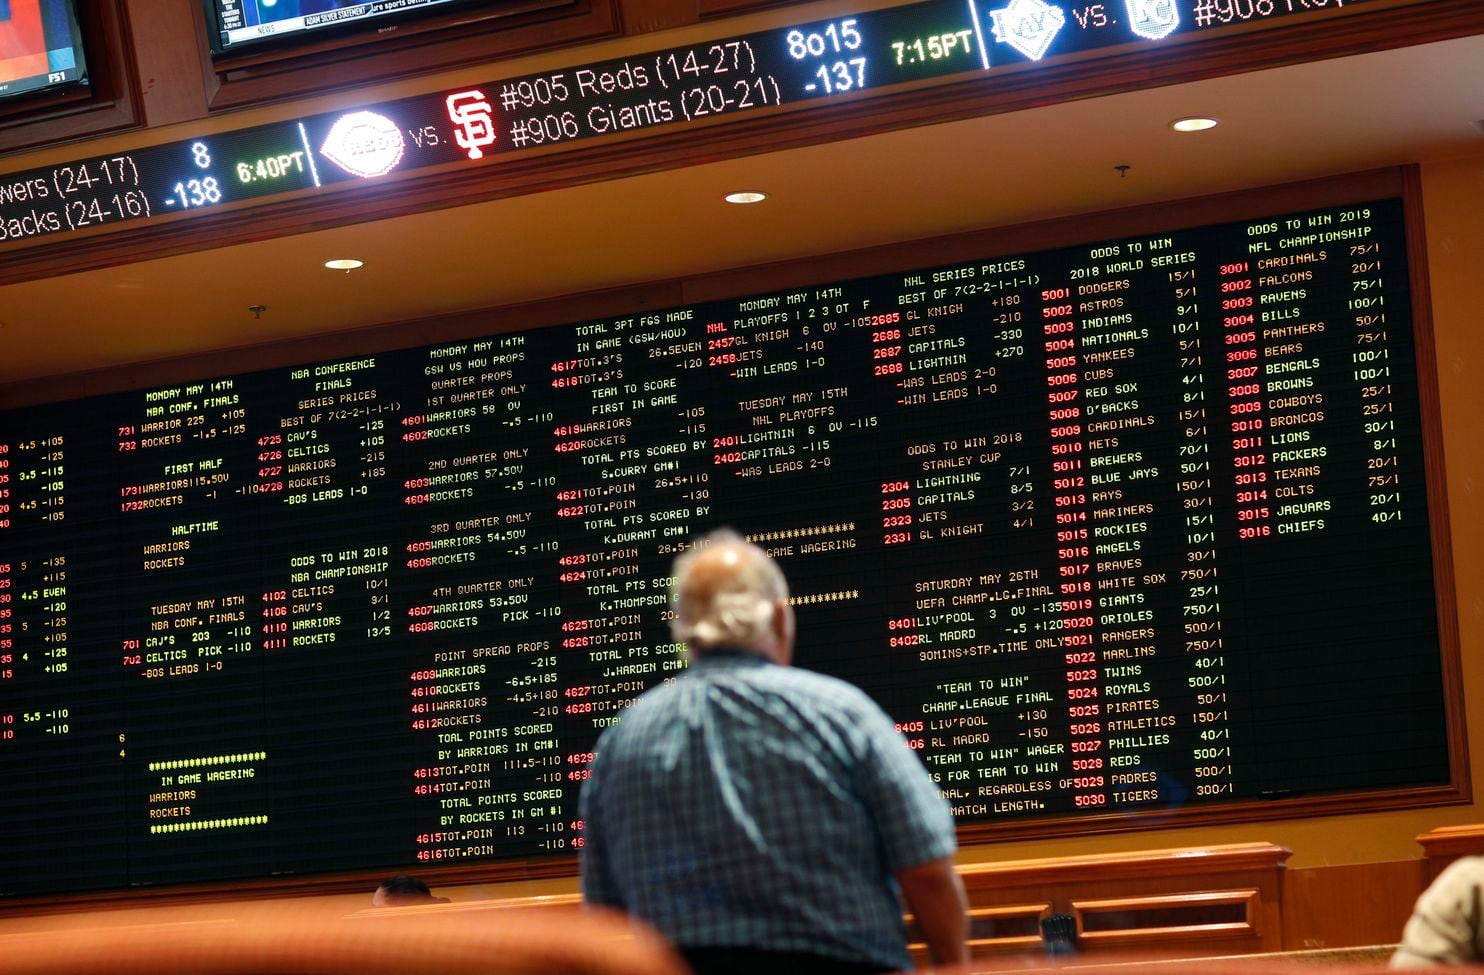 Montana Becomes First State to Legalize Sports Betting in 2019